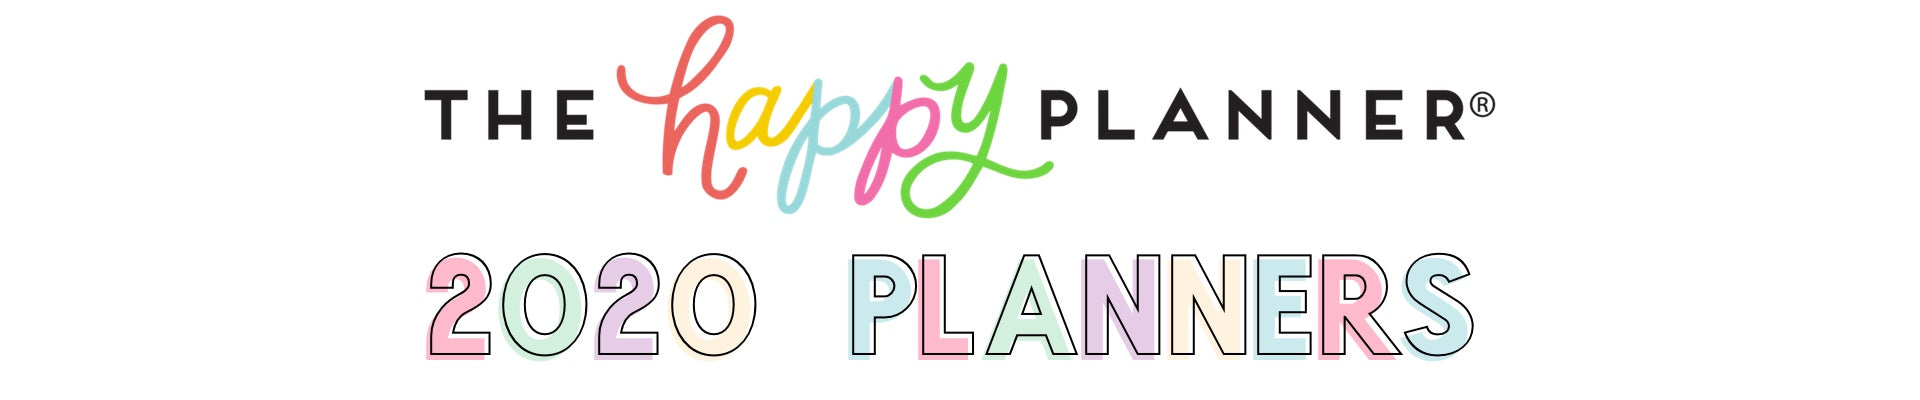 2020 HAPPY PLANNERS